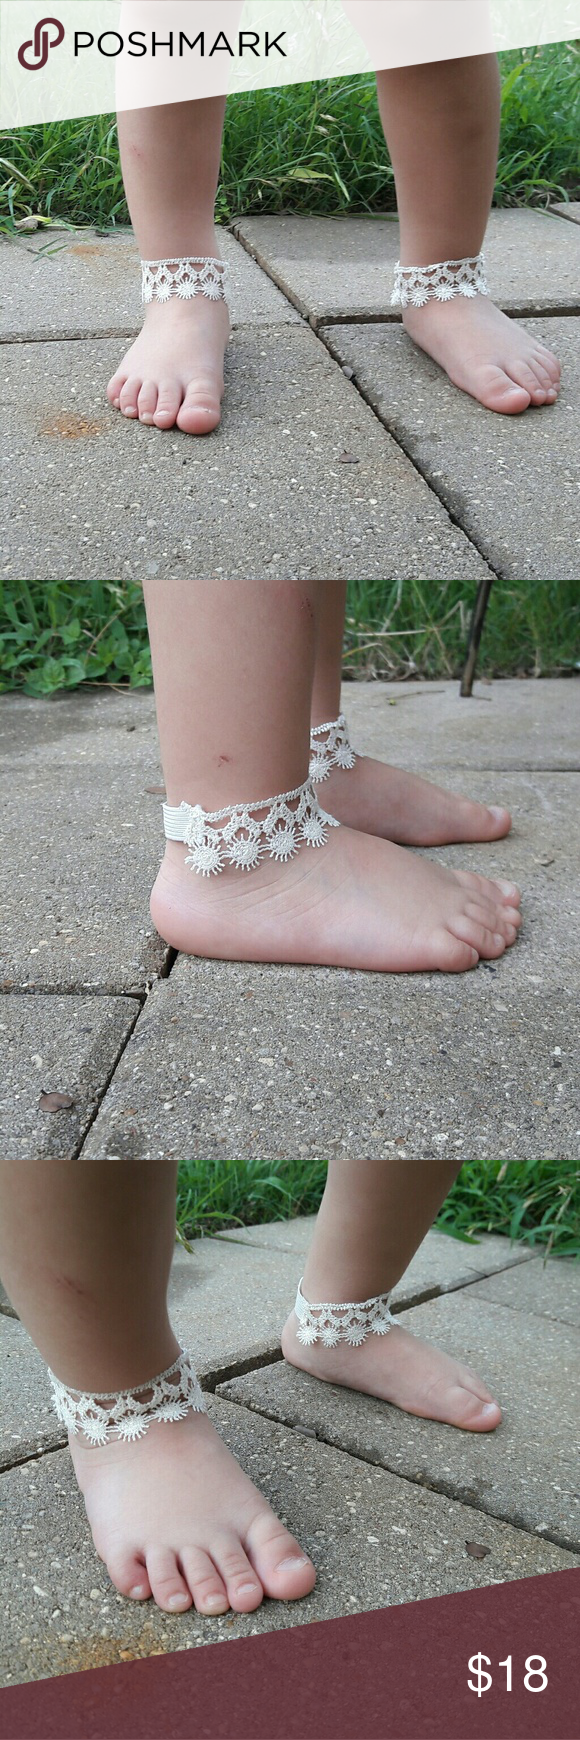 child fullxfull anklet bracelet toddler moonstone zoom il baby qkjs and ankle listing